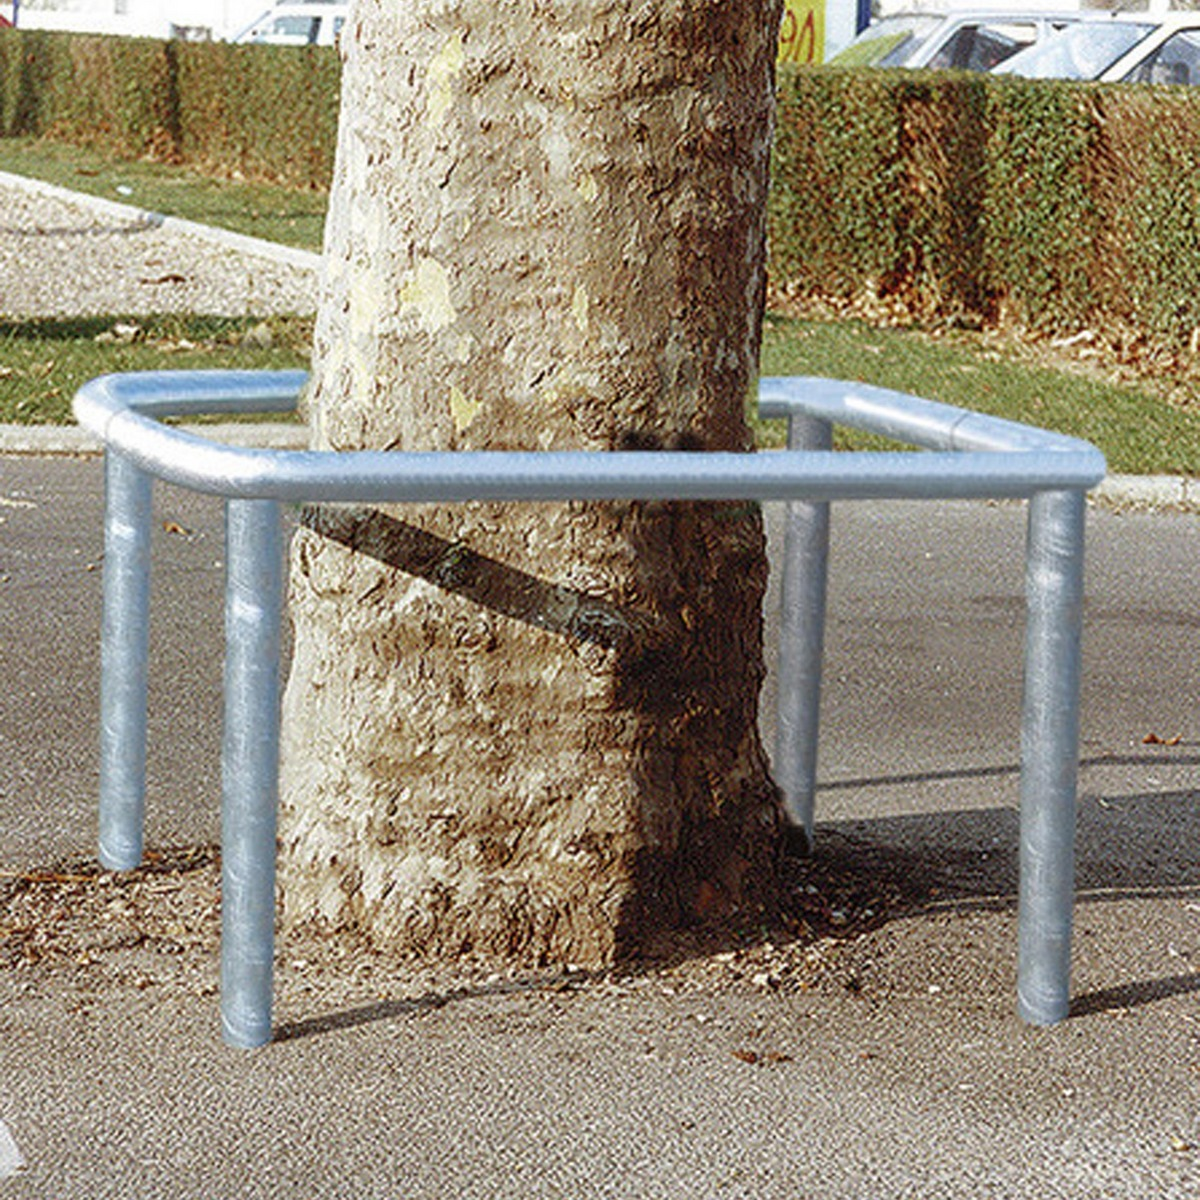 Column/Tree Protector - 10 Years Guarantee Solid Steel Construction image